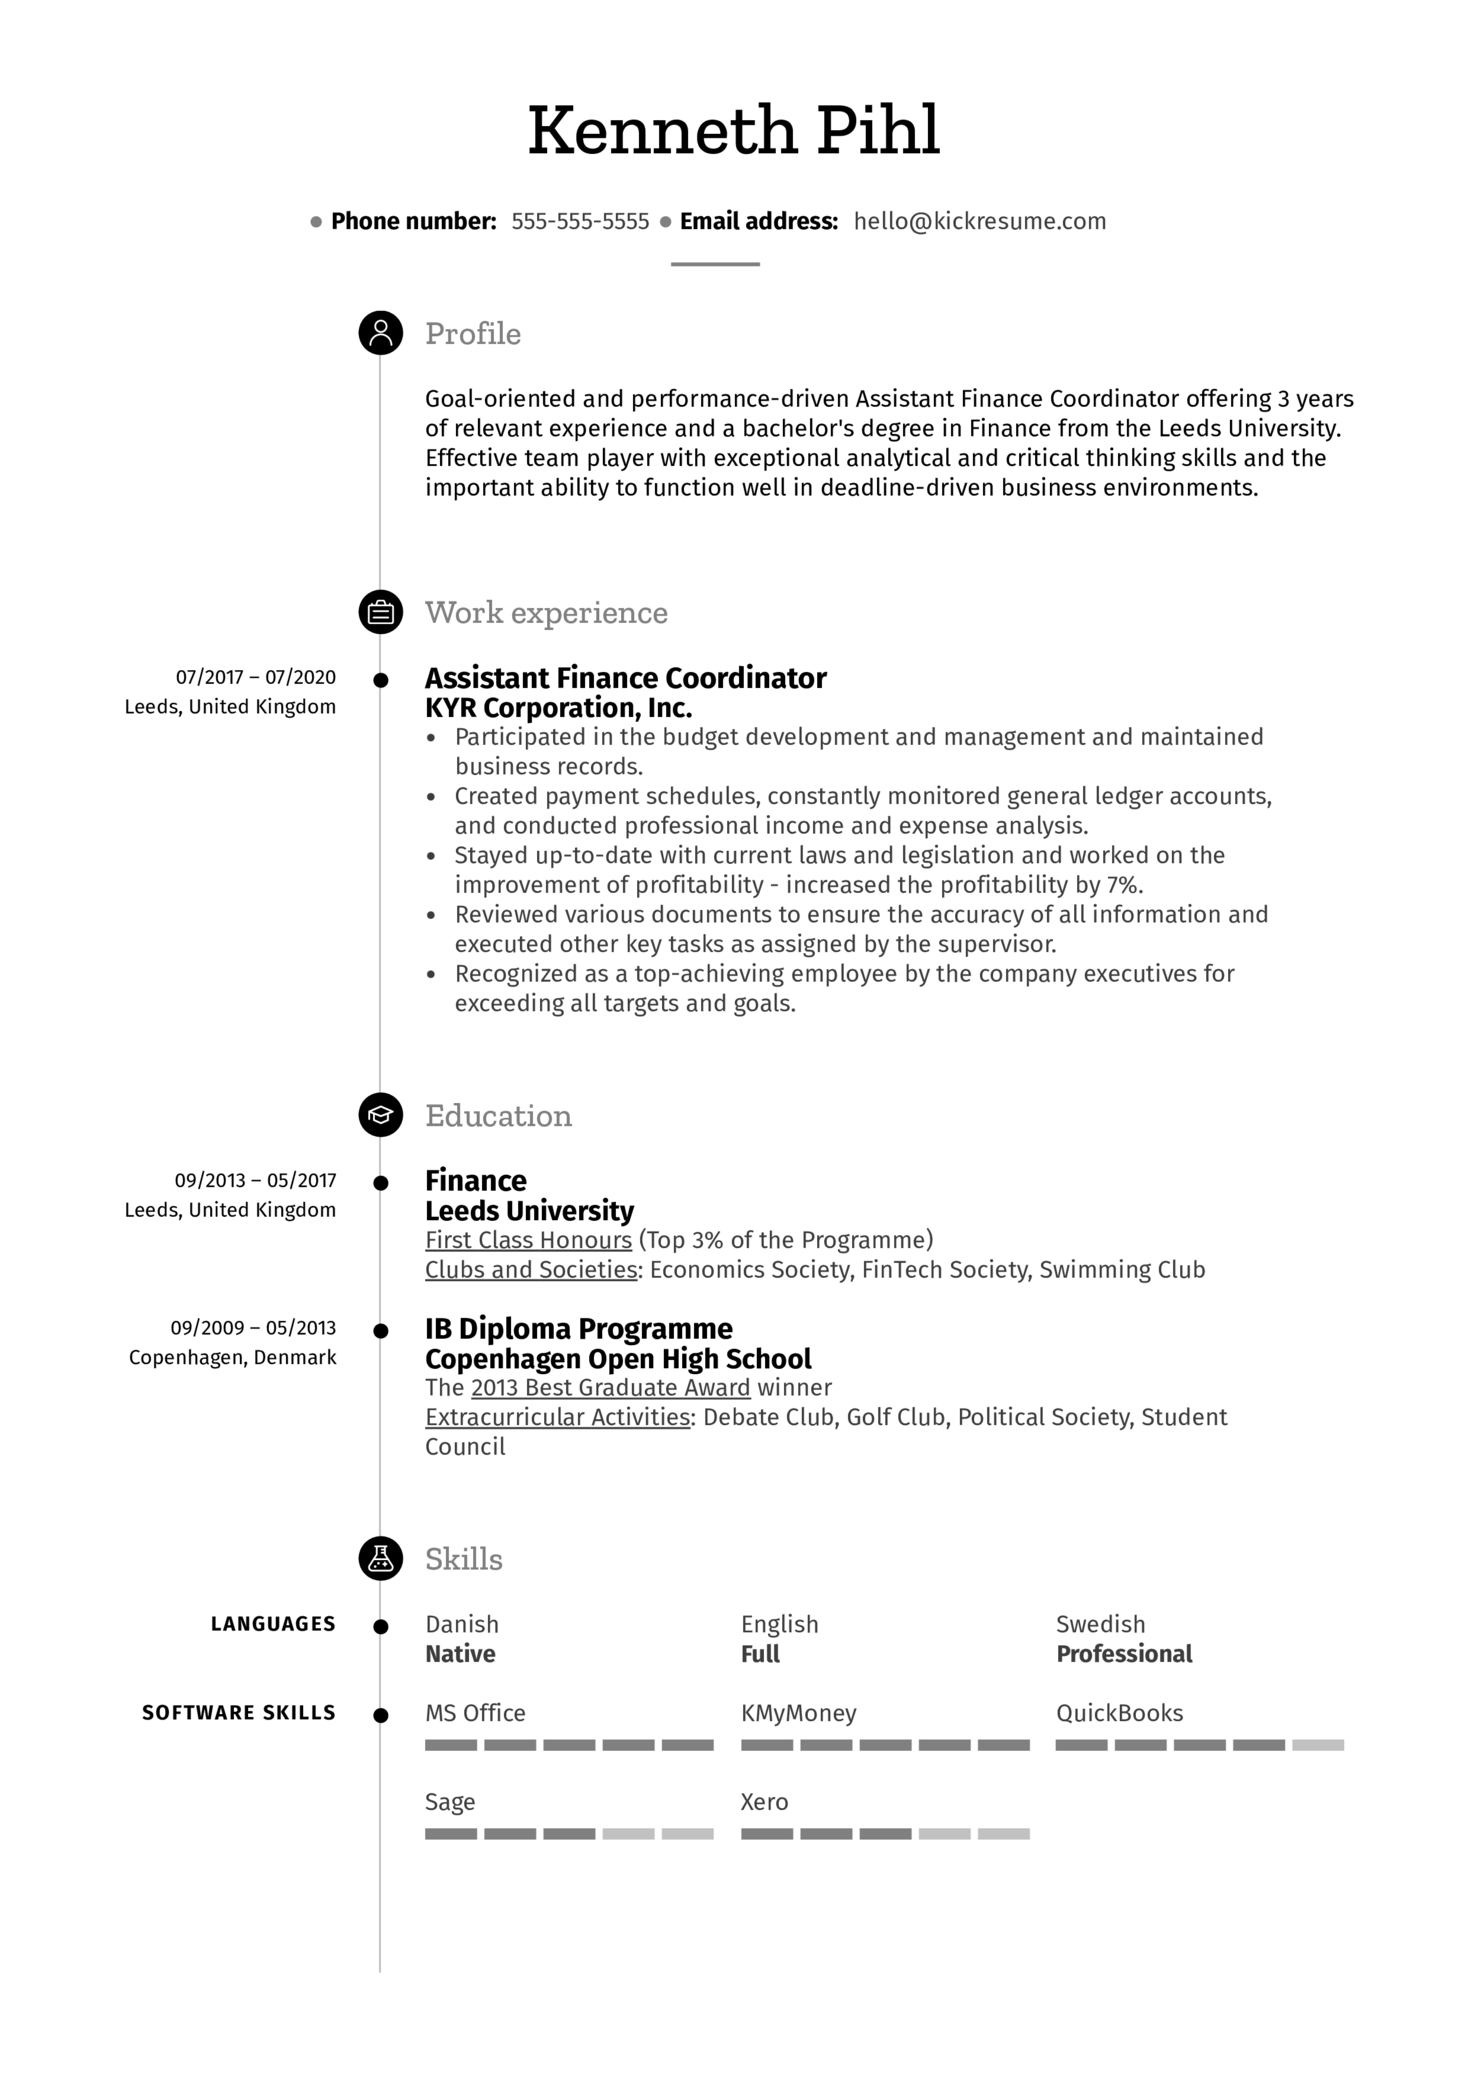 Resume Work Experience Example (Part 1)